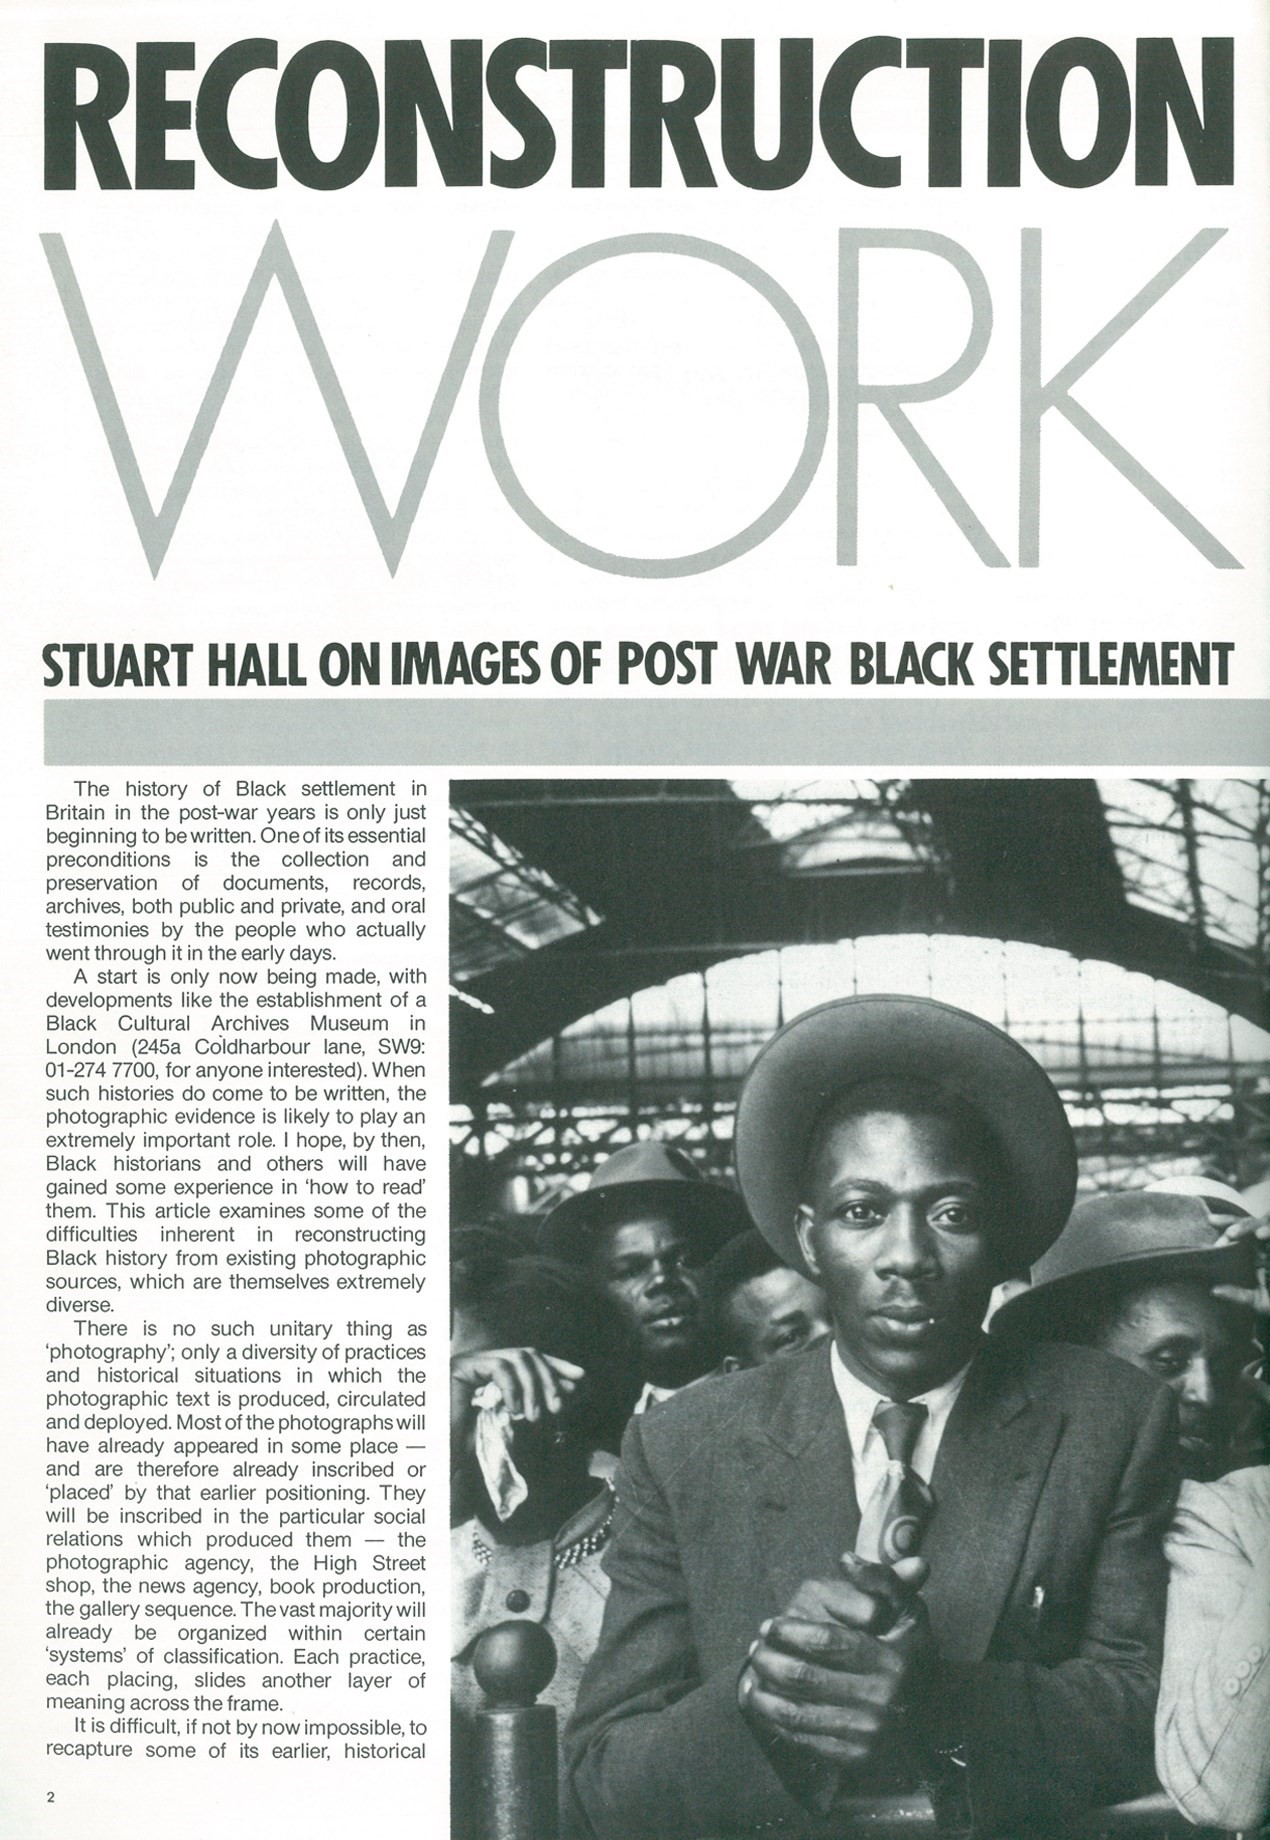 INSIDE THE STUART HALL LIBRARY ARCHIVES